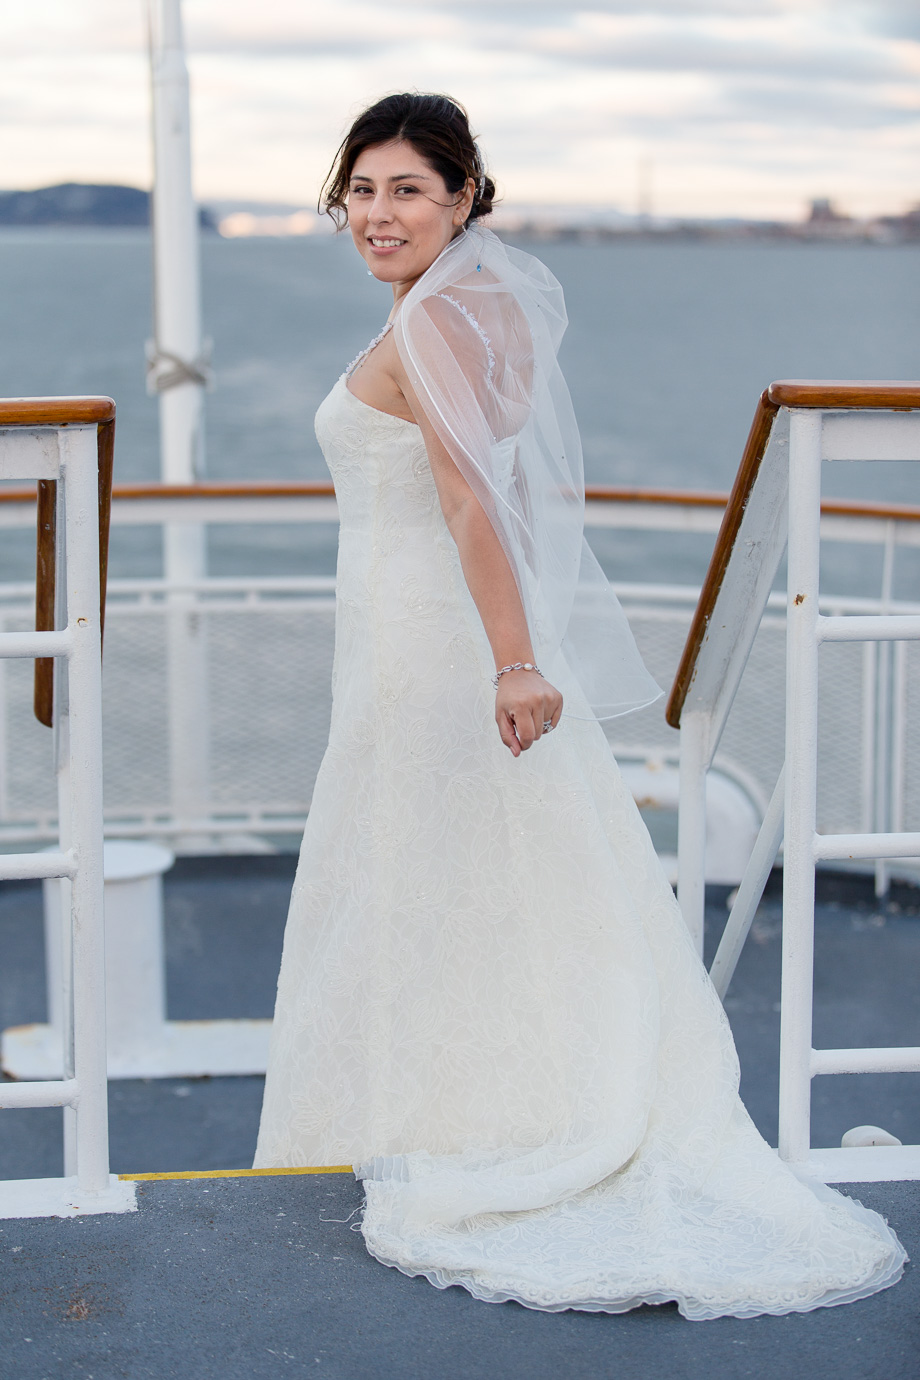 Bride on the top deck of the cruise ship looking back